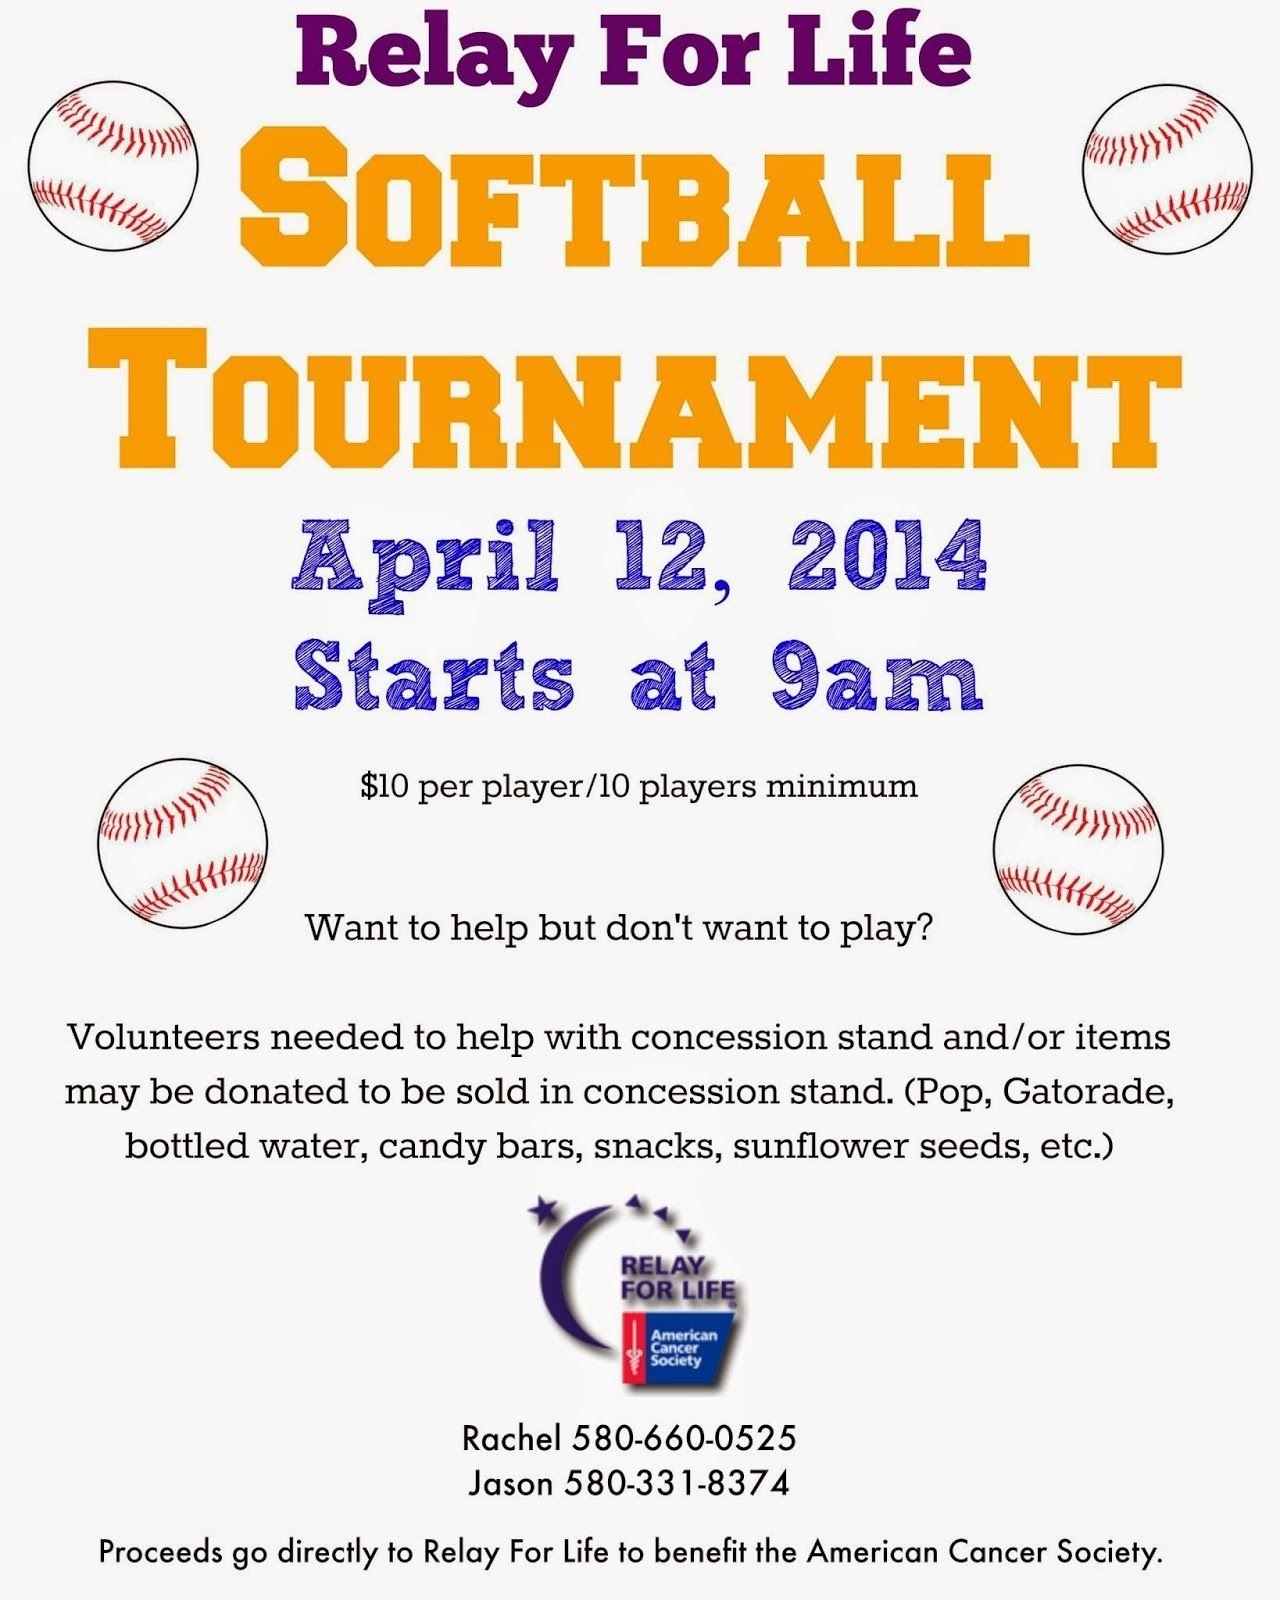 10 Attractive Fundraising Ideas For Softball Teams the little things in life relay for life softball tournament 2020